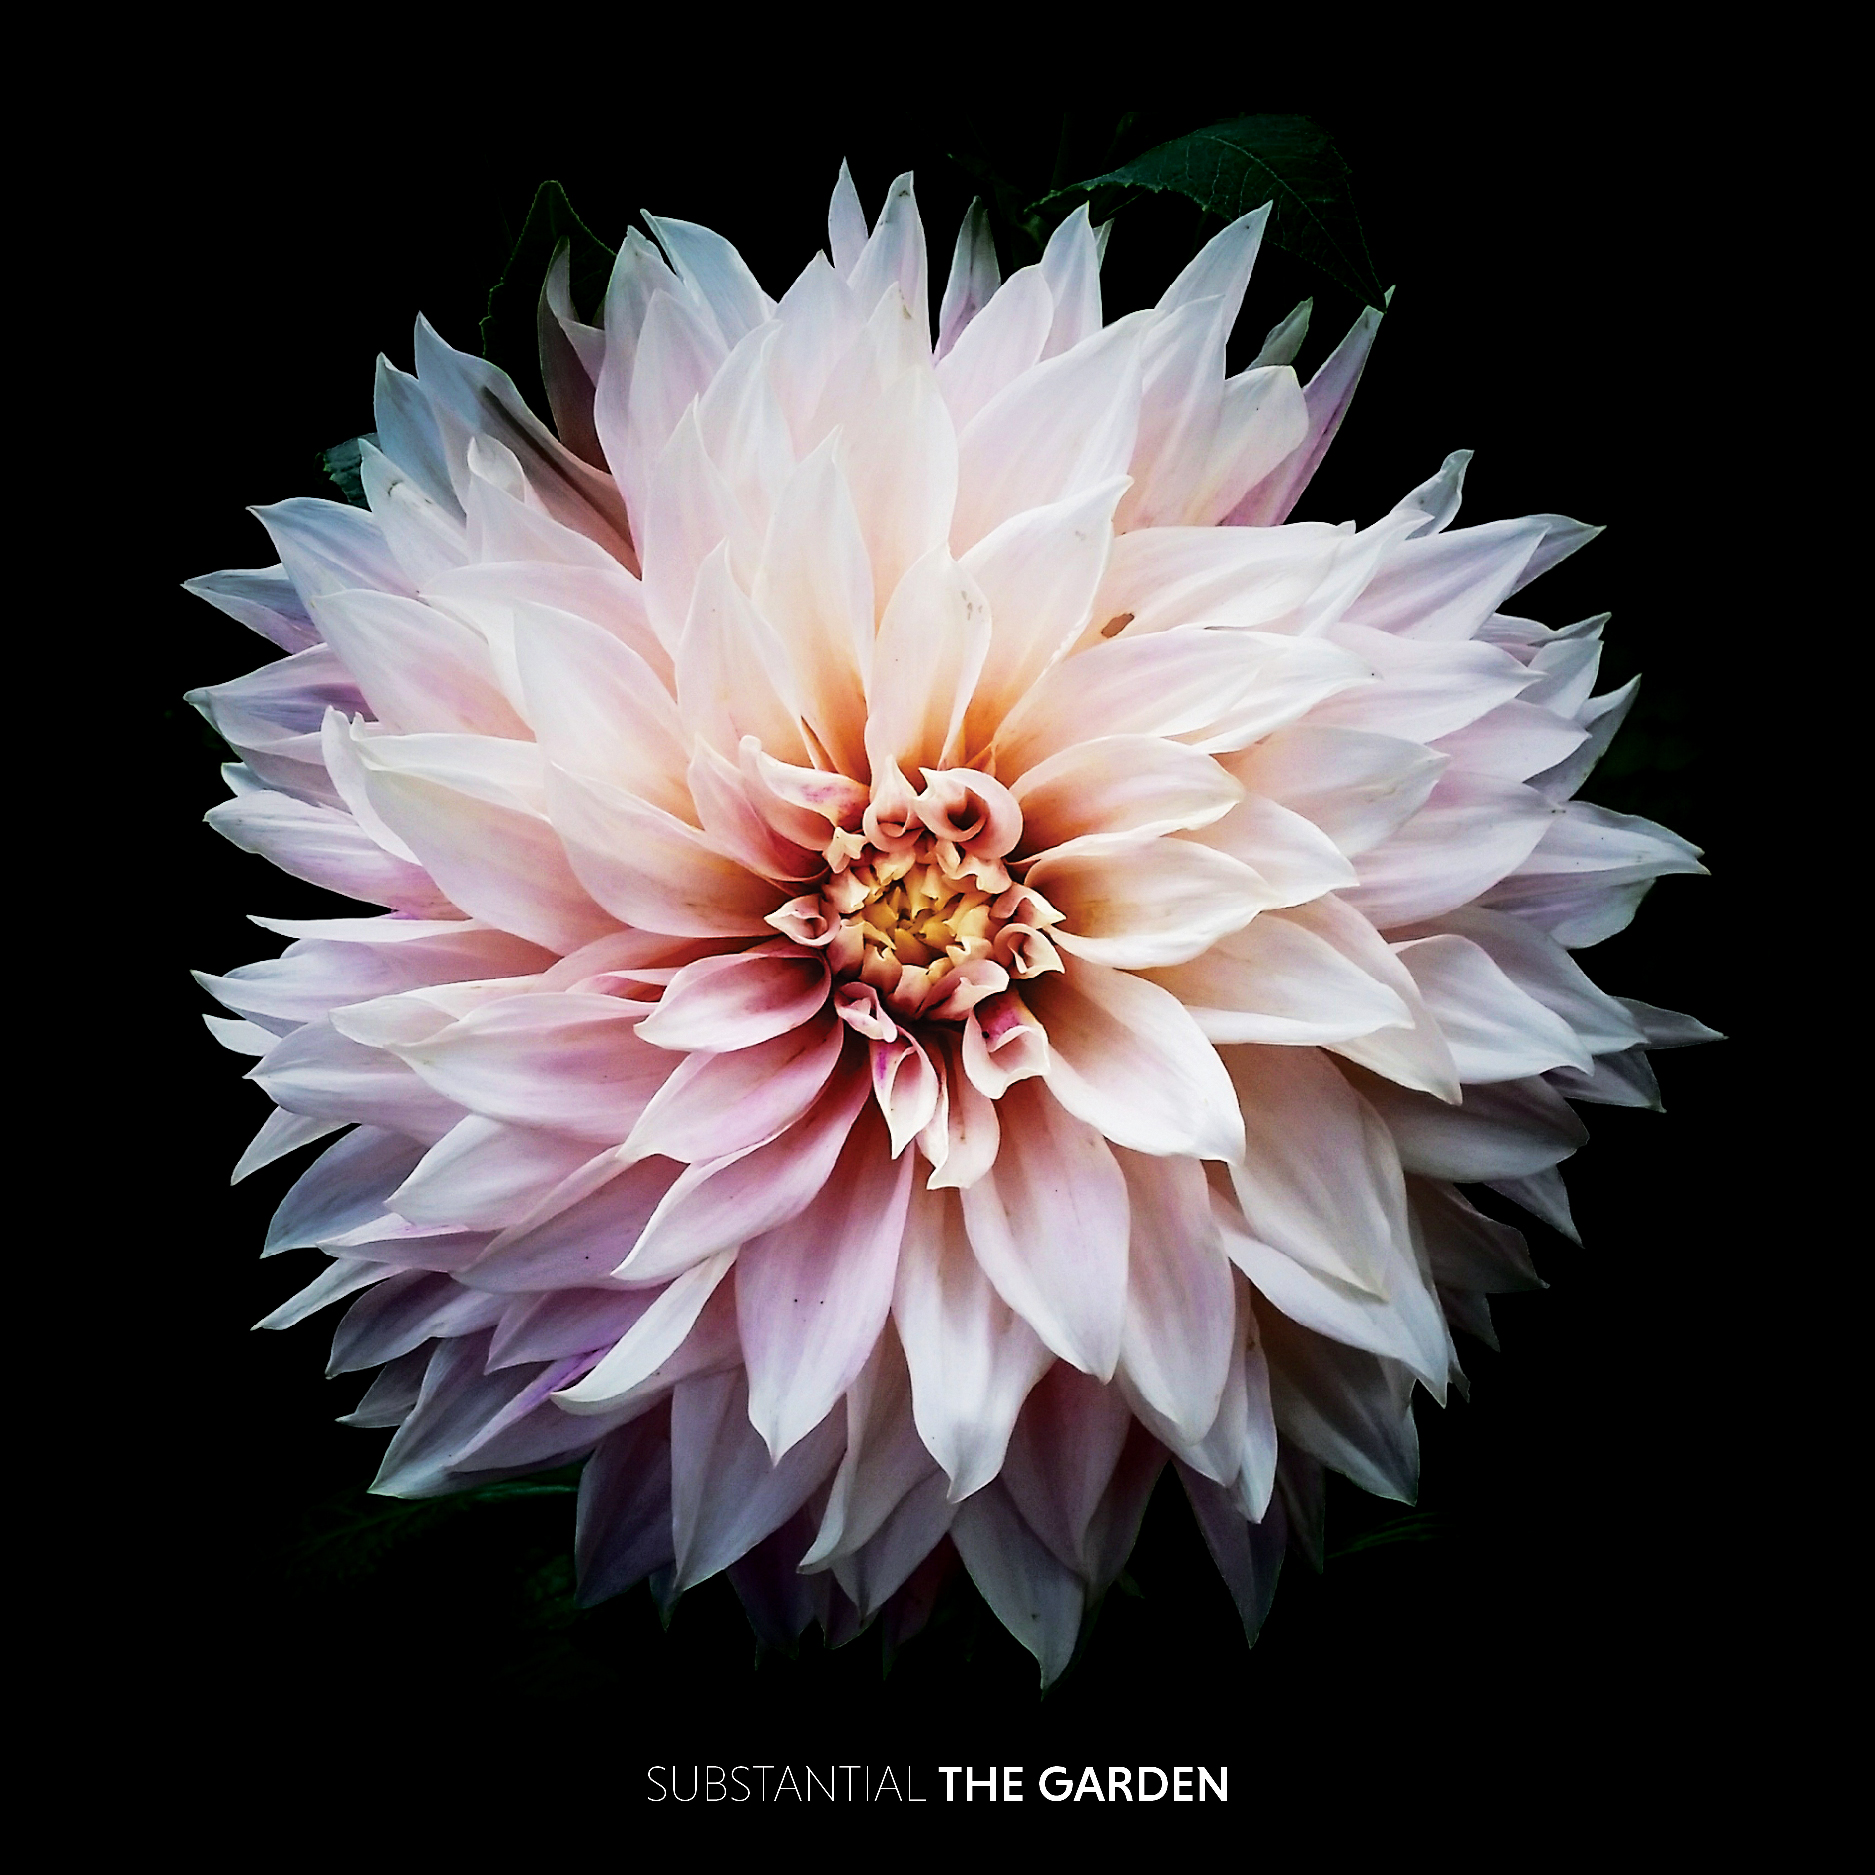 TheGarden-Final-loweres.jpg